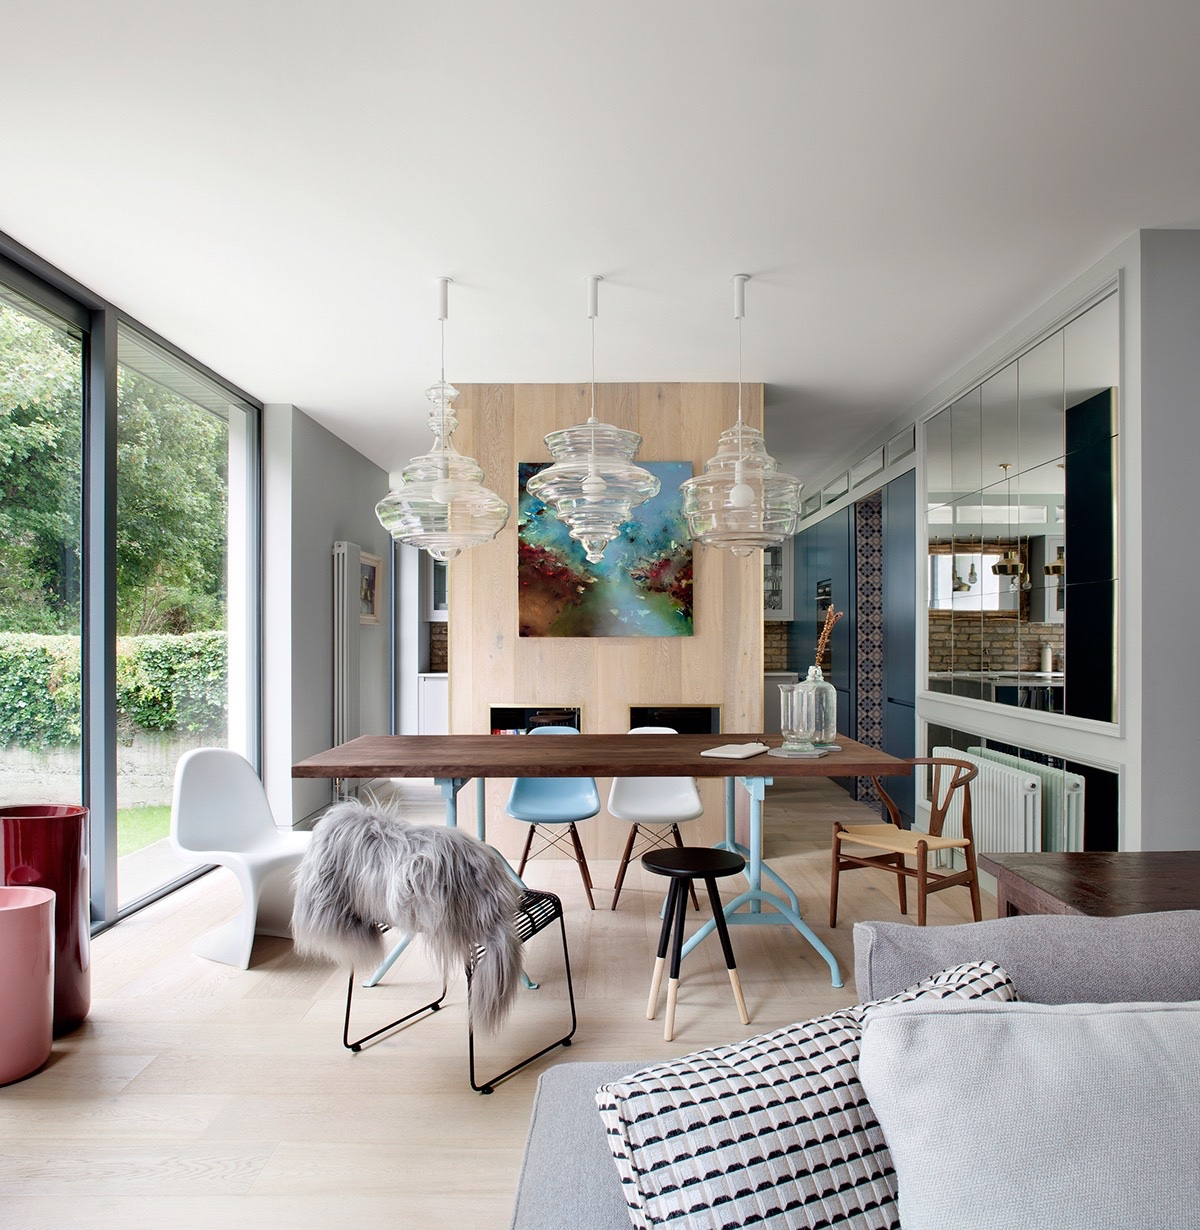 Modern Dining Room Ideas: Modern Dining Room Designs Combined With Scandinavian